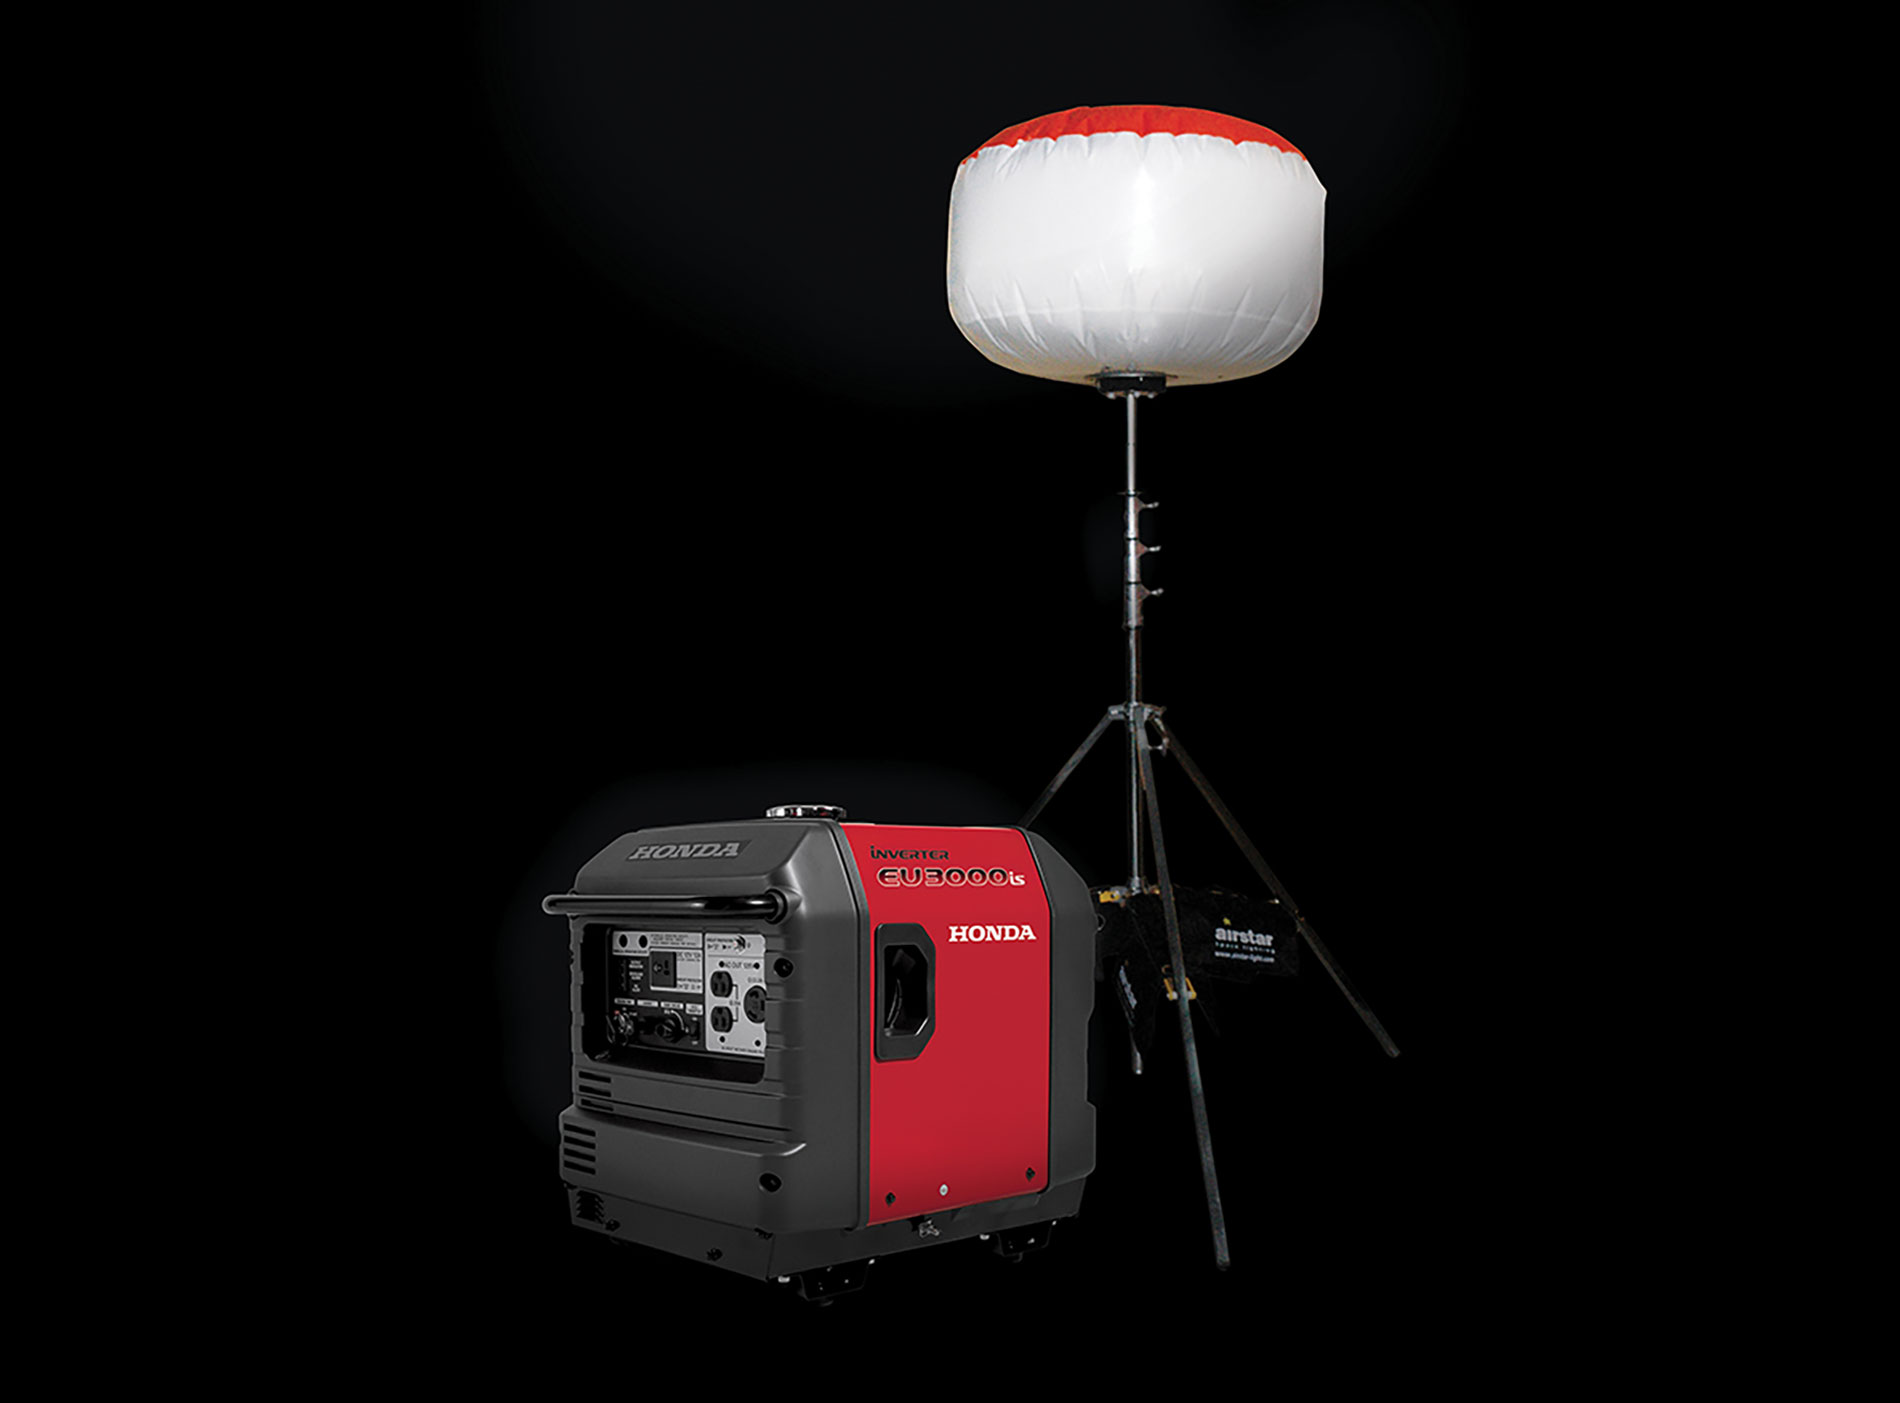 Honda portable work light